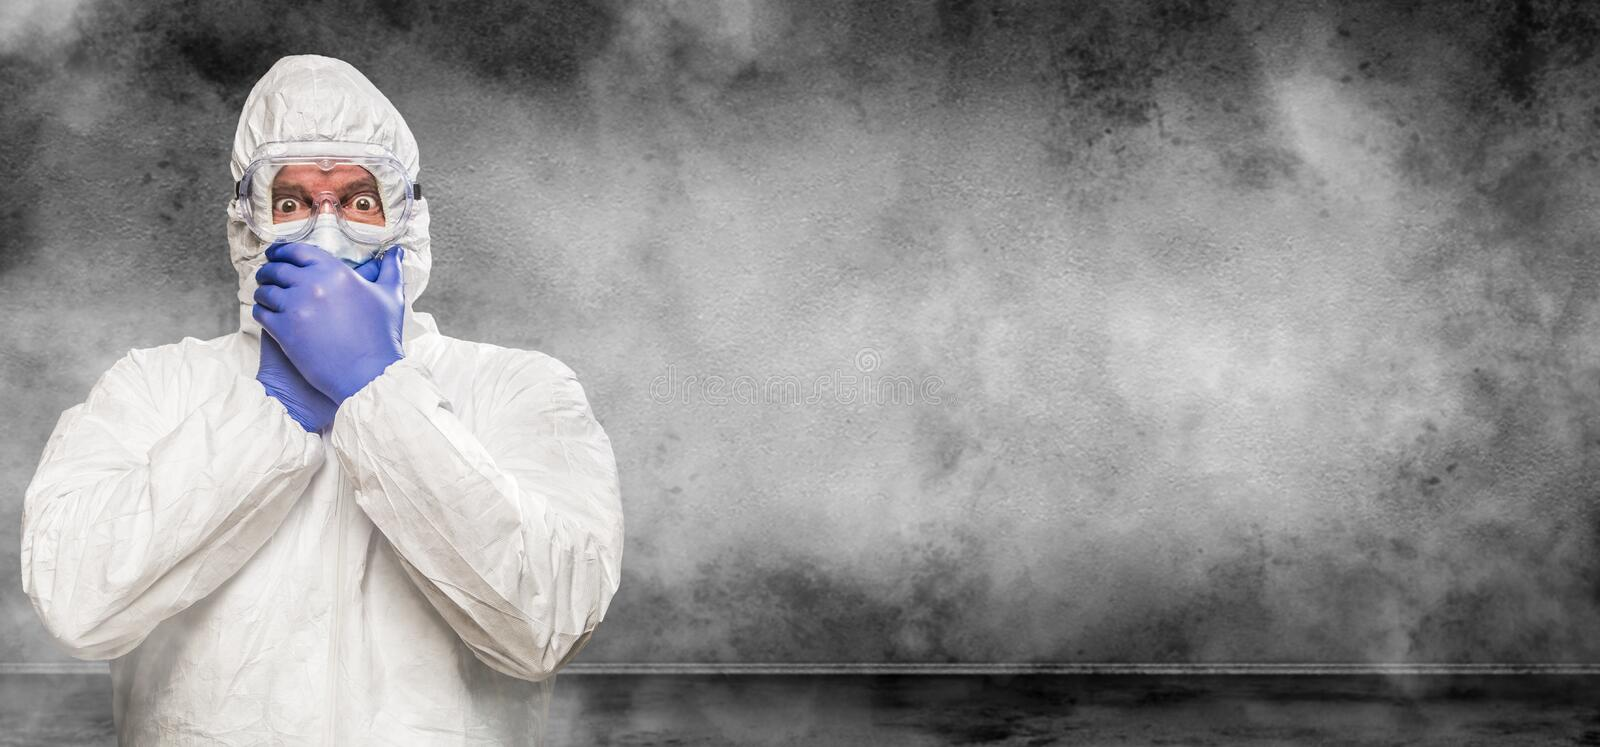 Shocked Man Wearing Hazmat Suit and Goggles In Smokey Room Banner with Copy Space royalty free stock photos